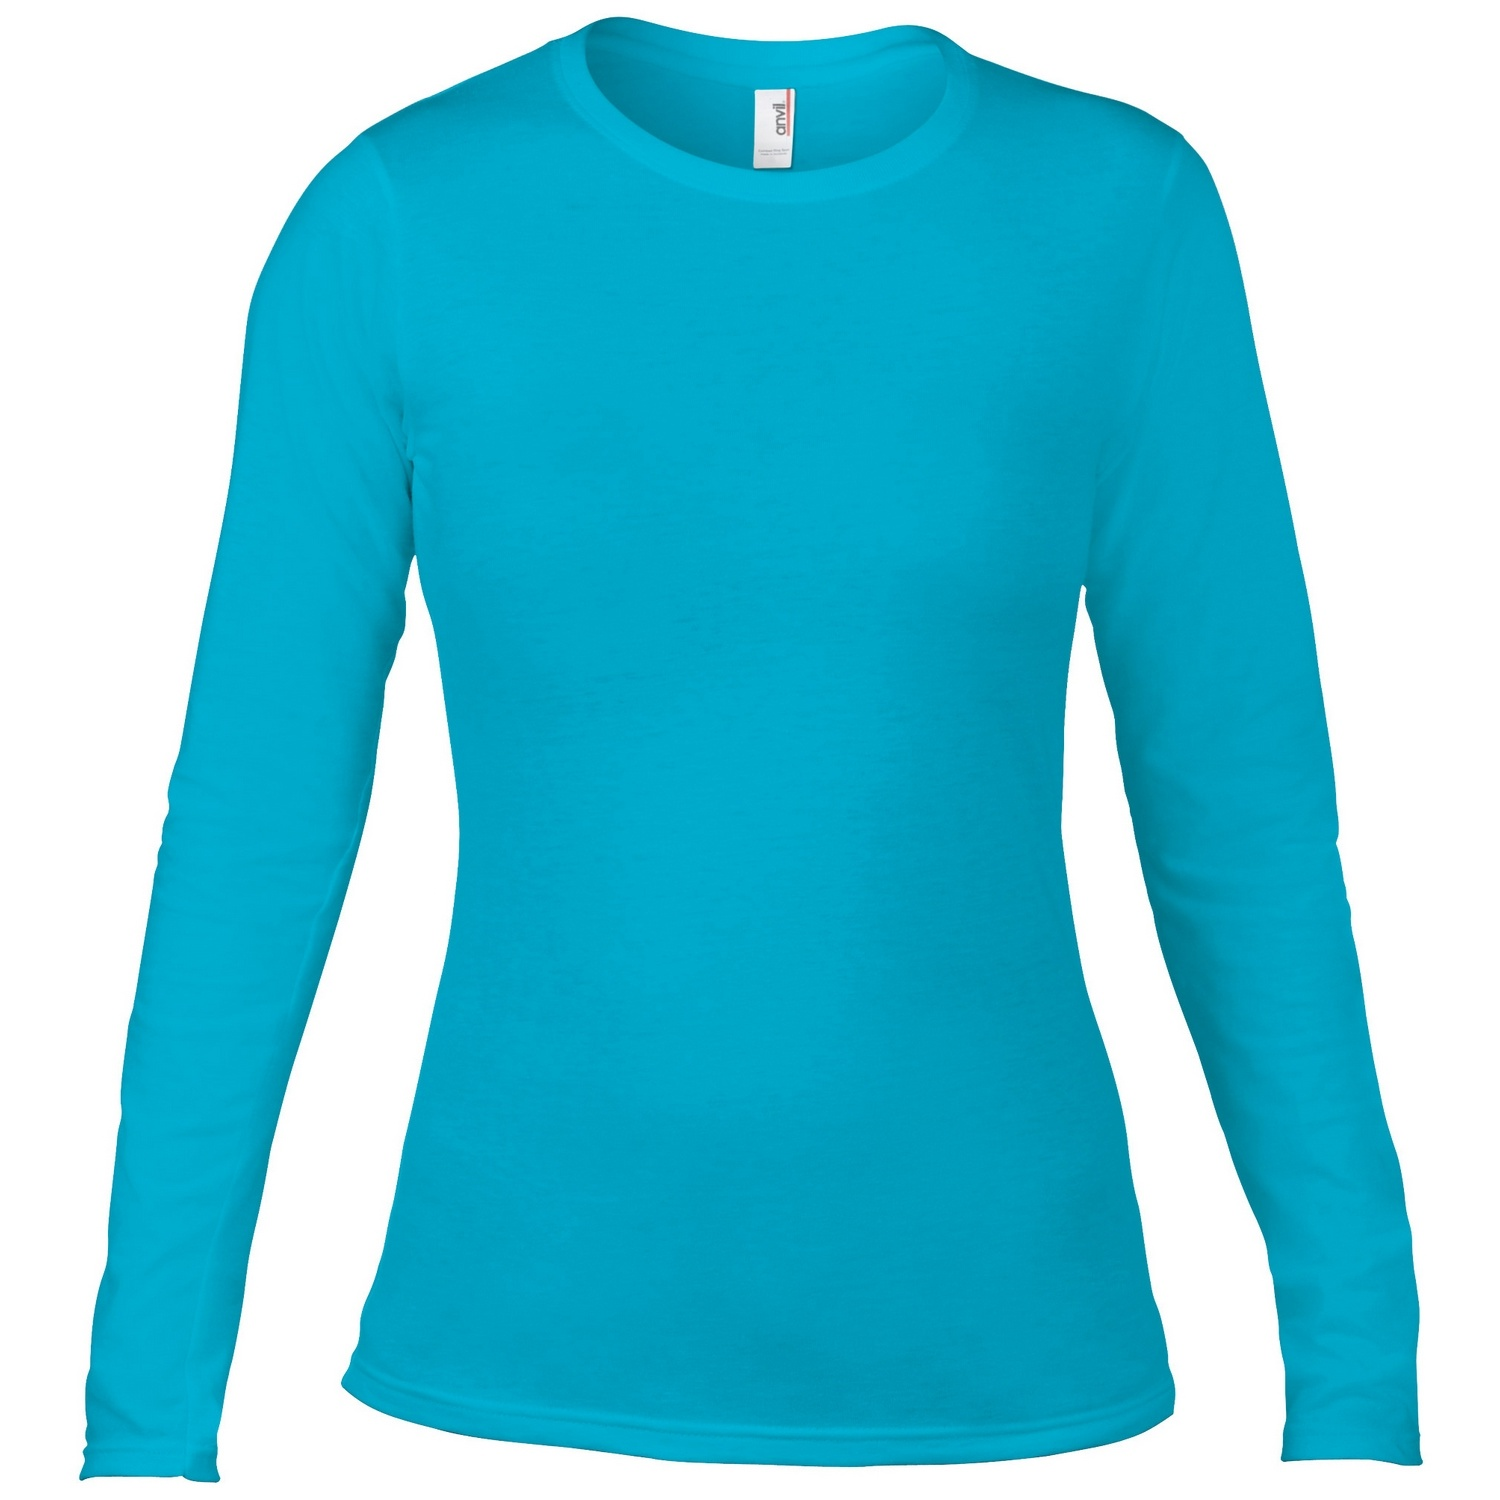 anvil womens ladies fashion plain fitted long sleeve t